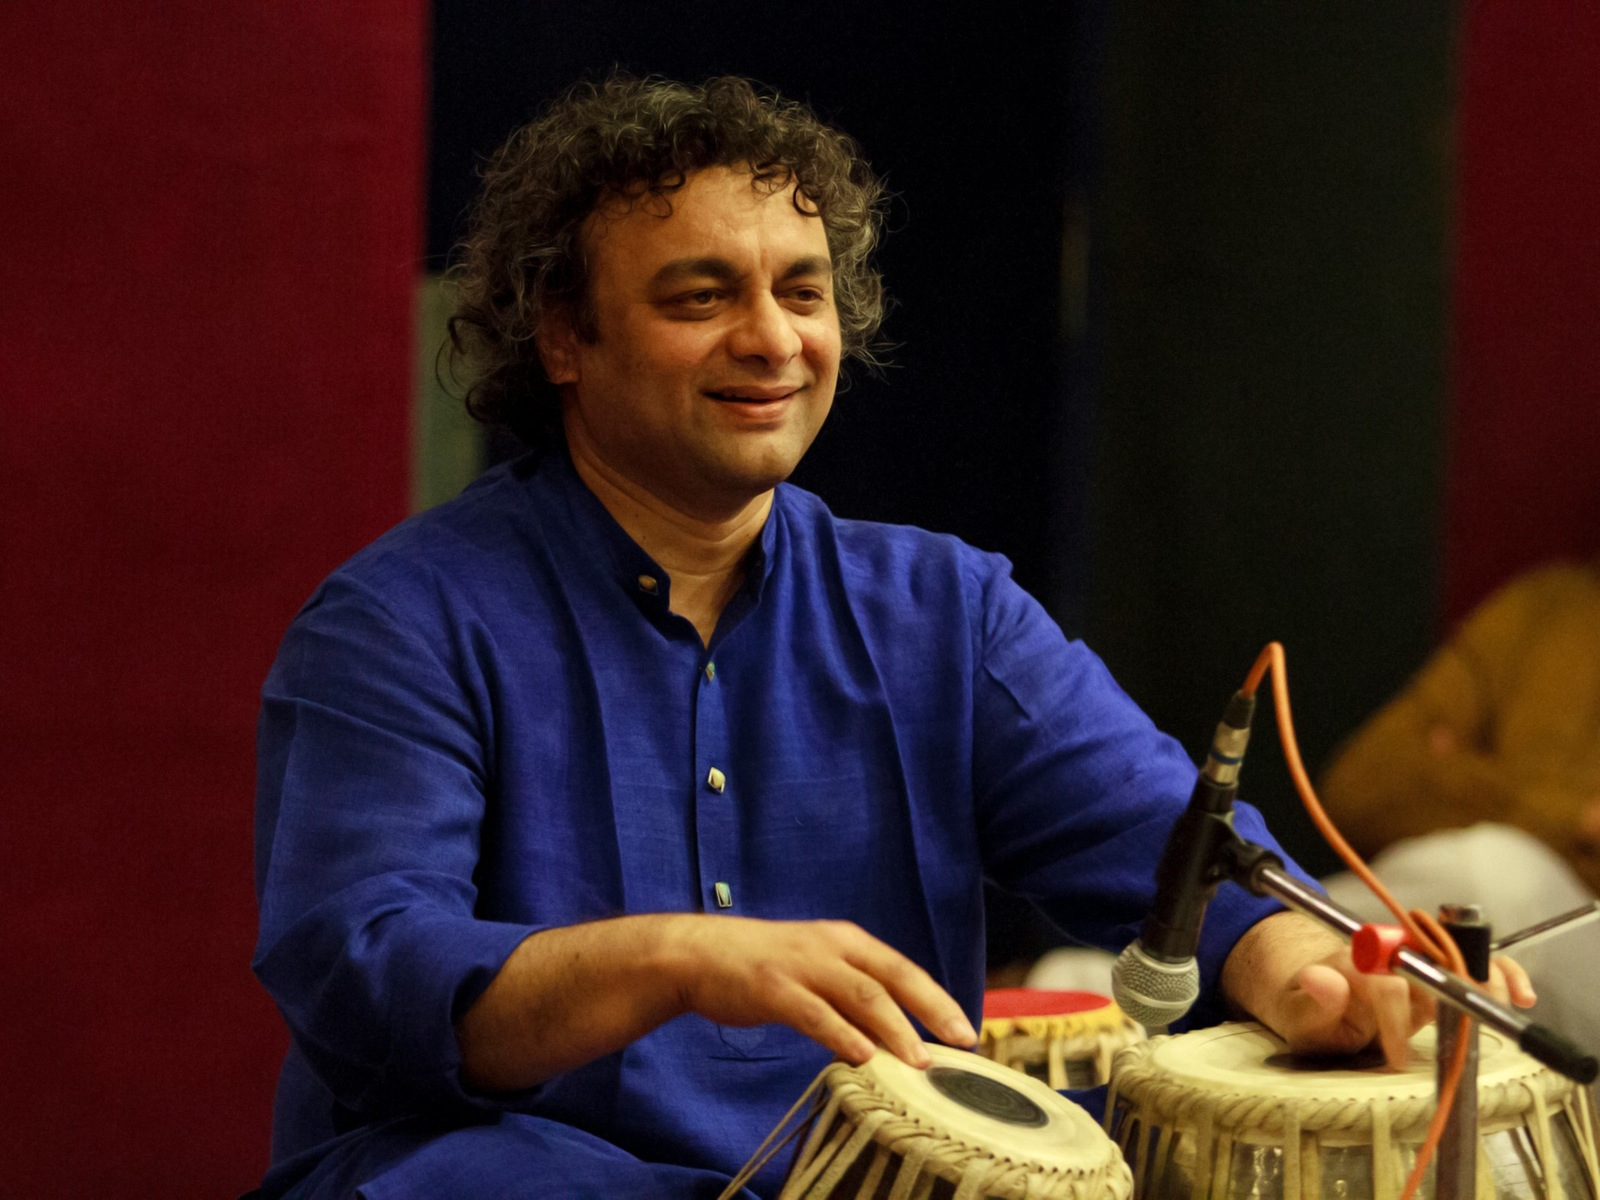 A performance by Aneesh Pradhan with Sudhir Nayak and Dr Adrian McNeil